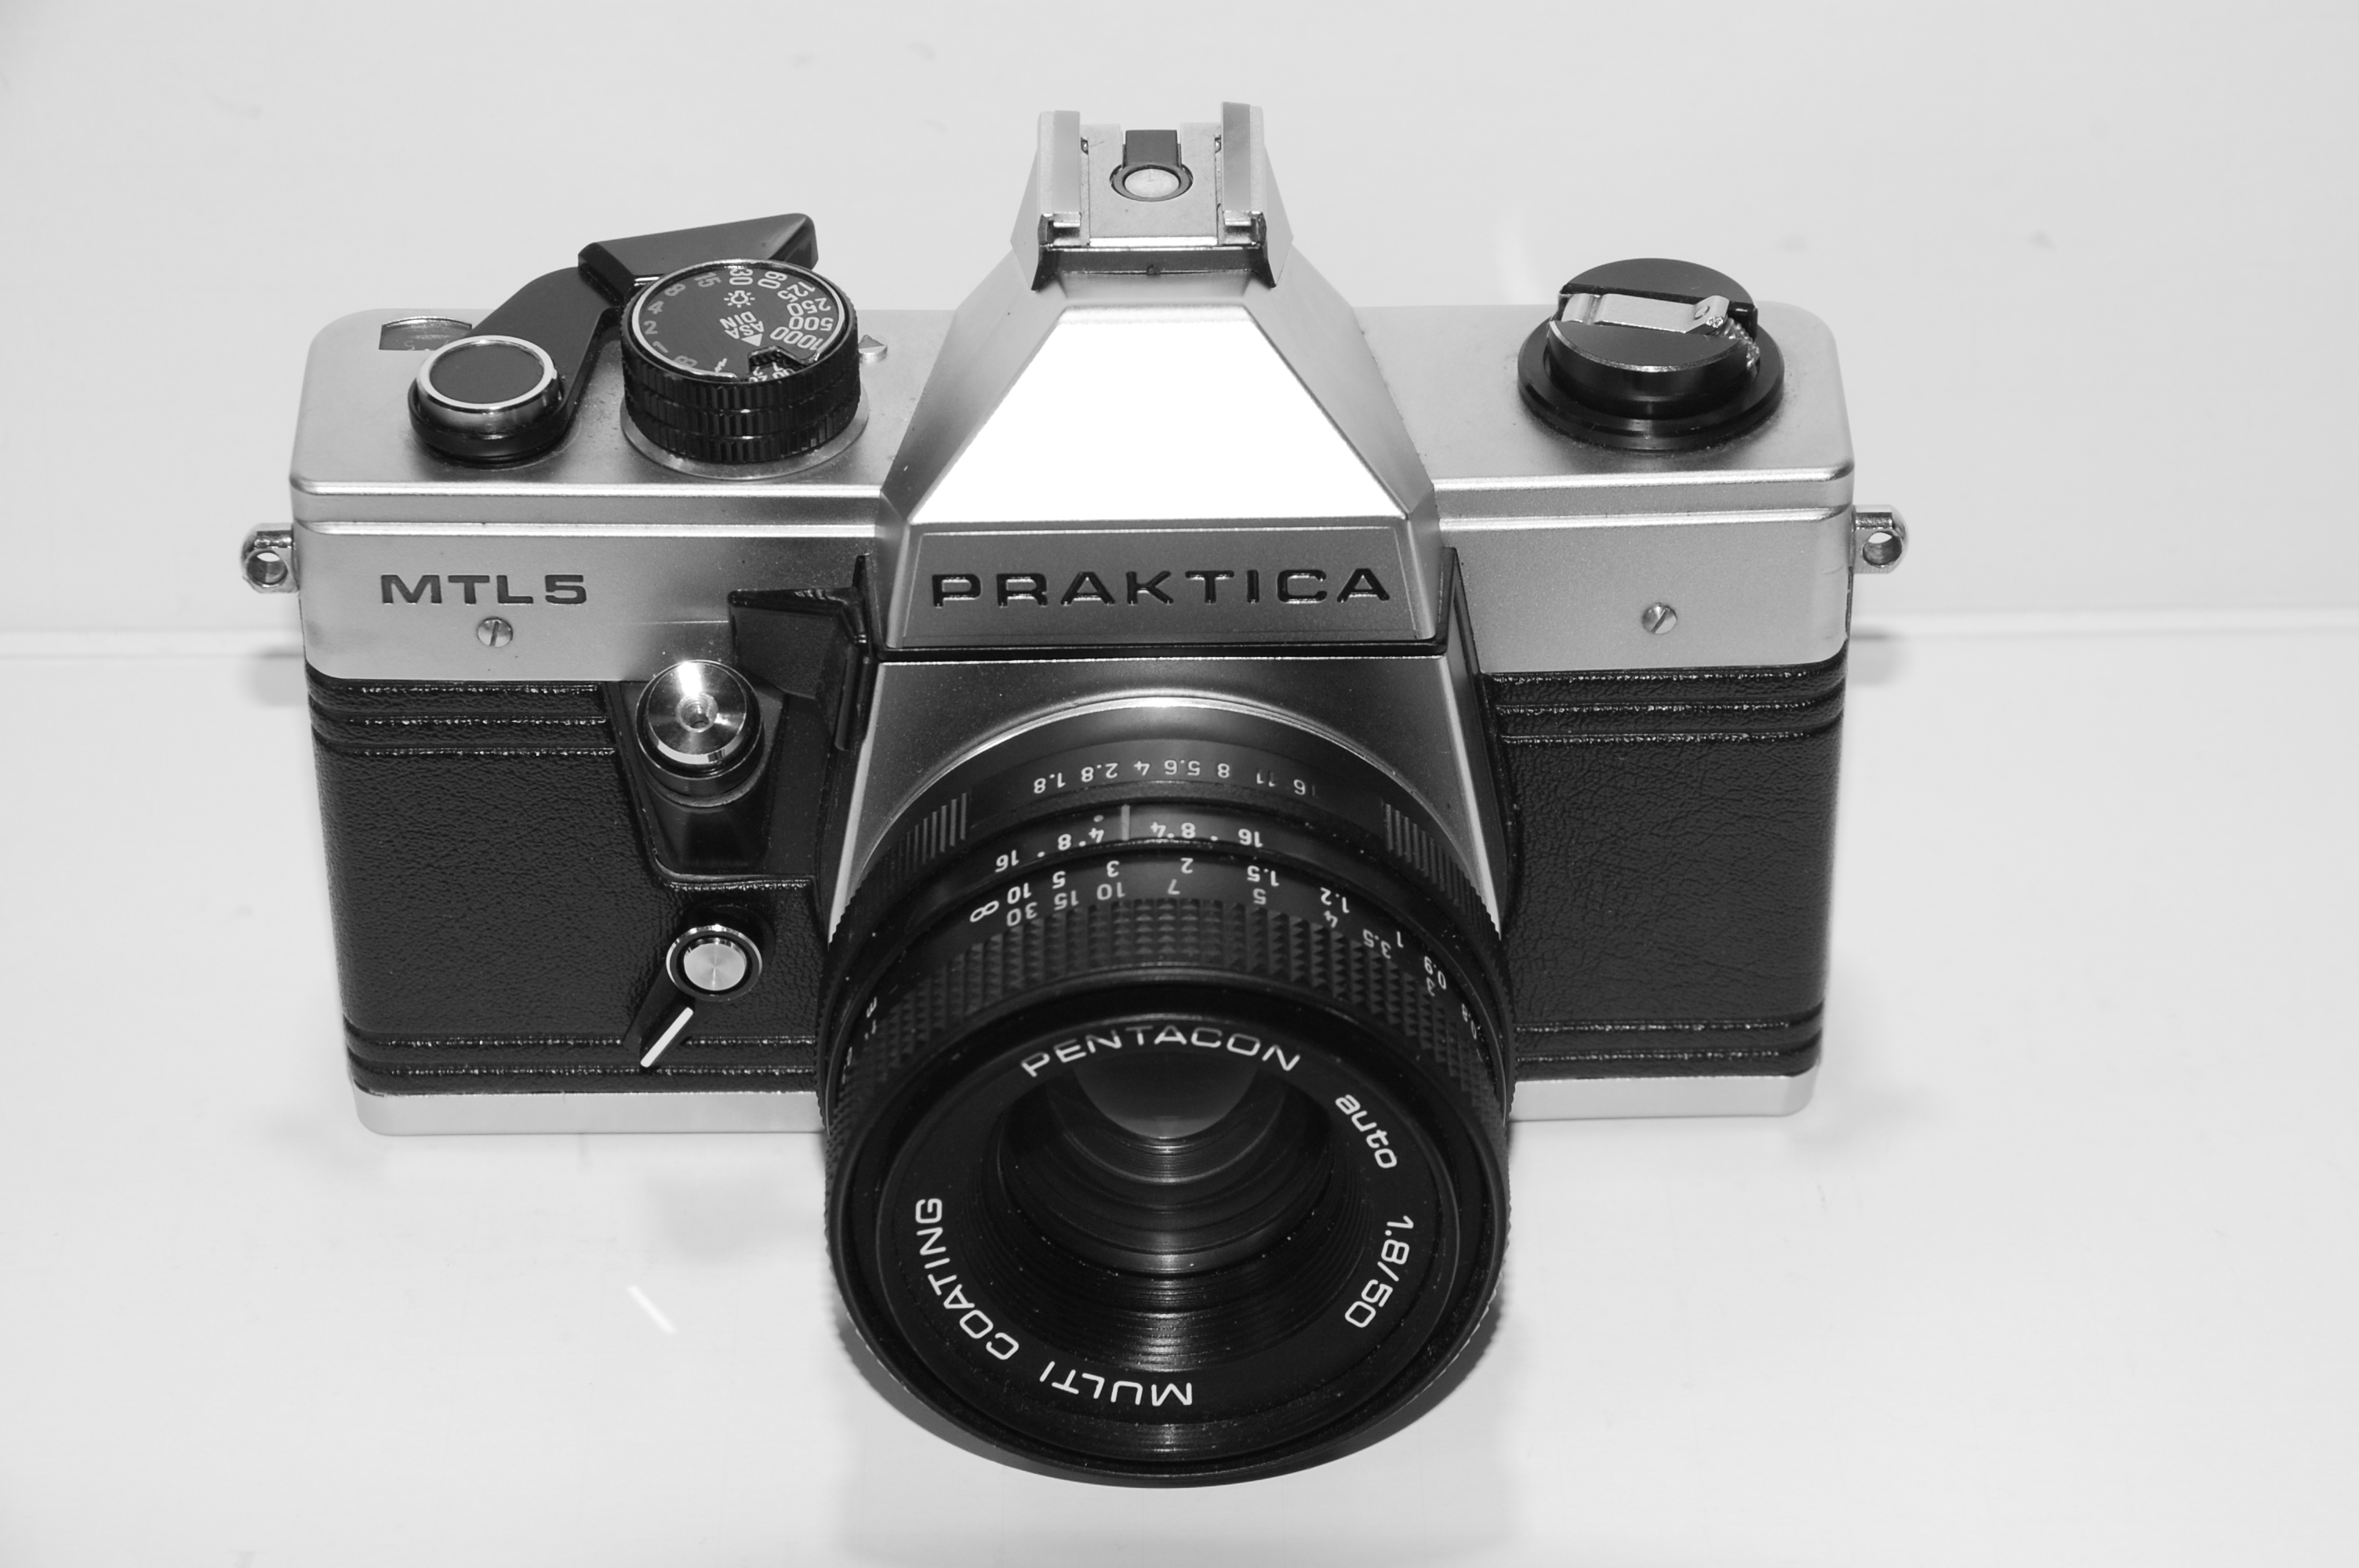 Praktica set lb with domiplan mm and a praktica mtl